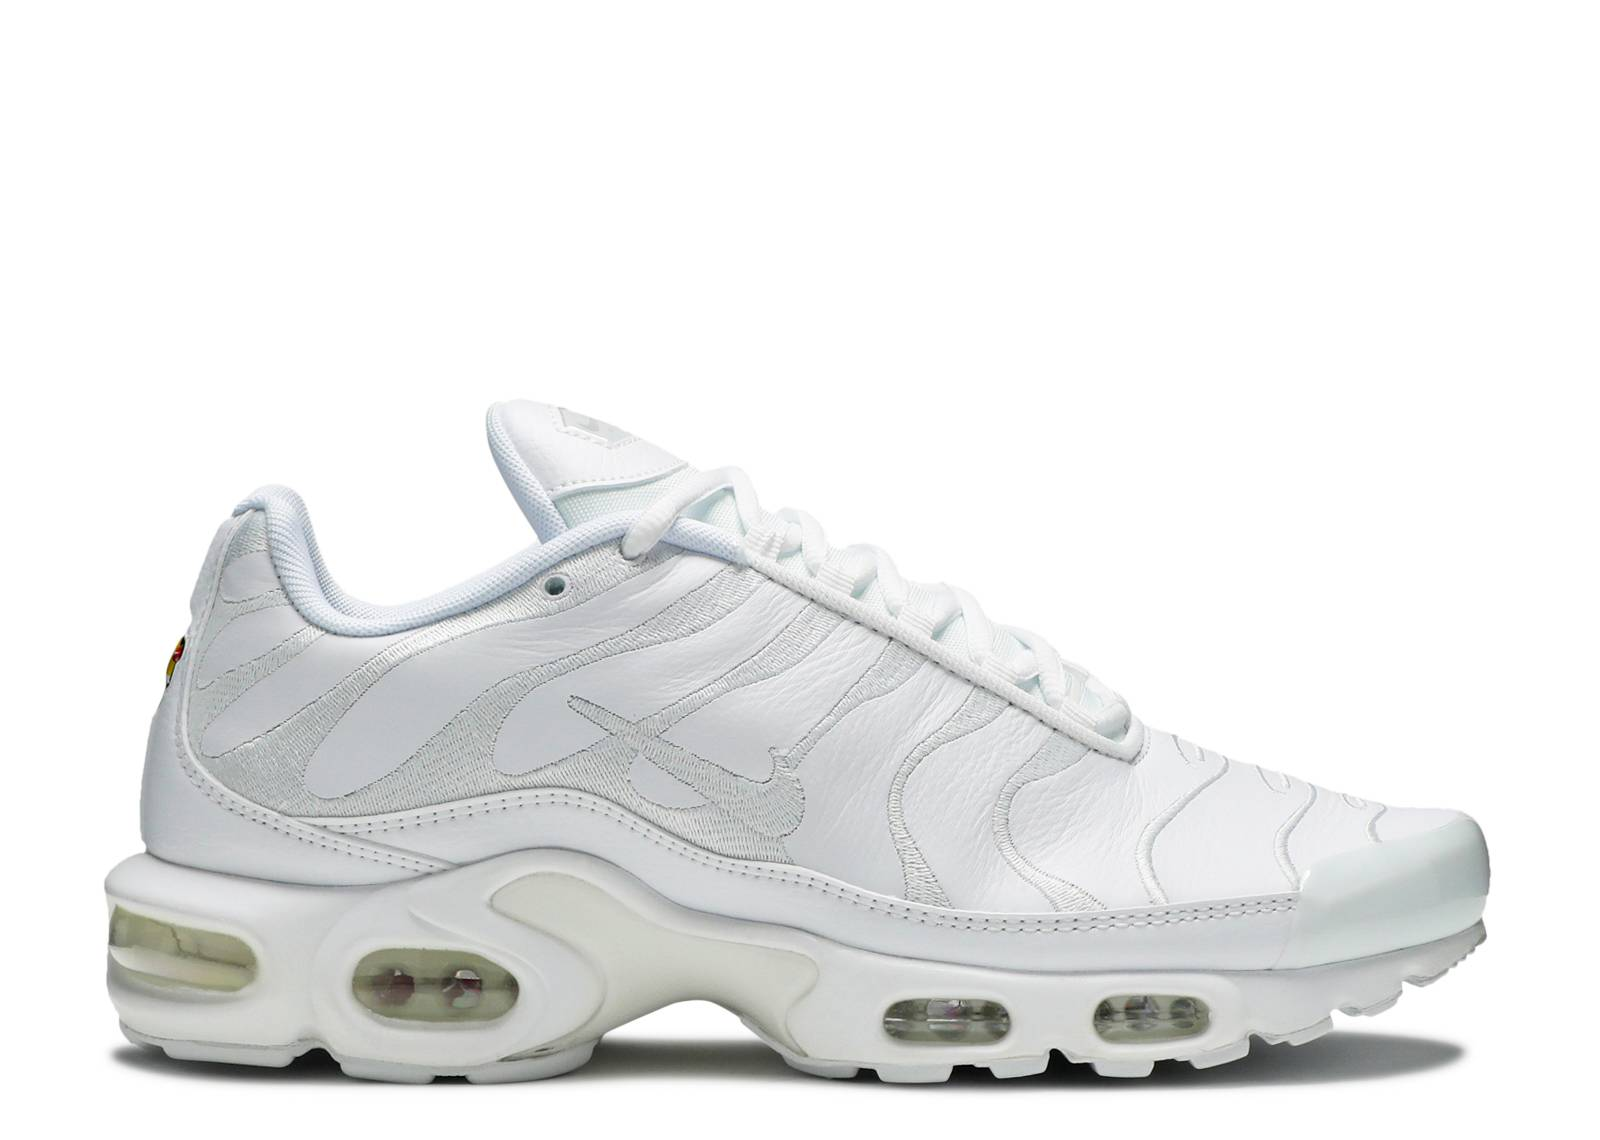 Men's Nike Air Max Plus TN 2018 Triple White Boys Running Shoes NIKE001294